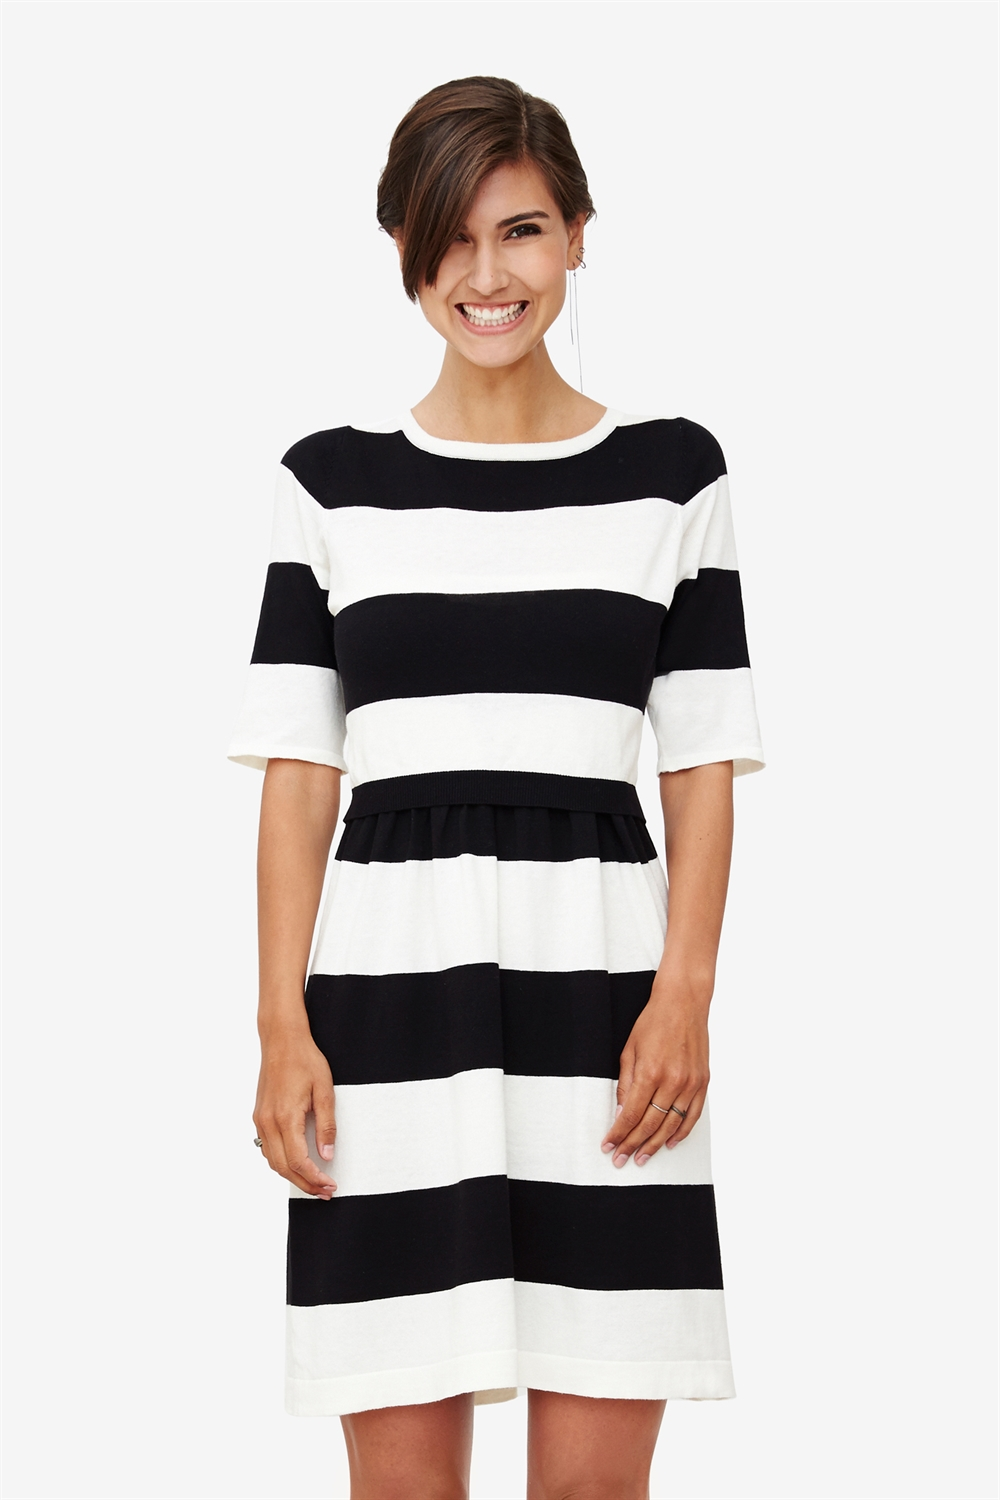 Cream/black striped nursing dress in 100% organic cotton